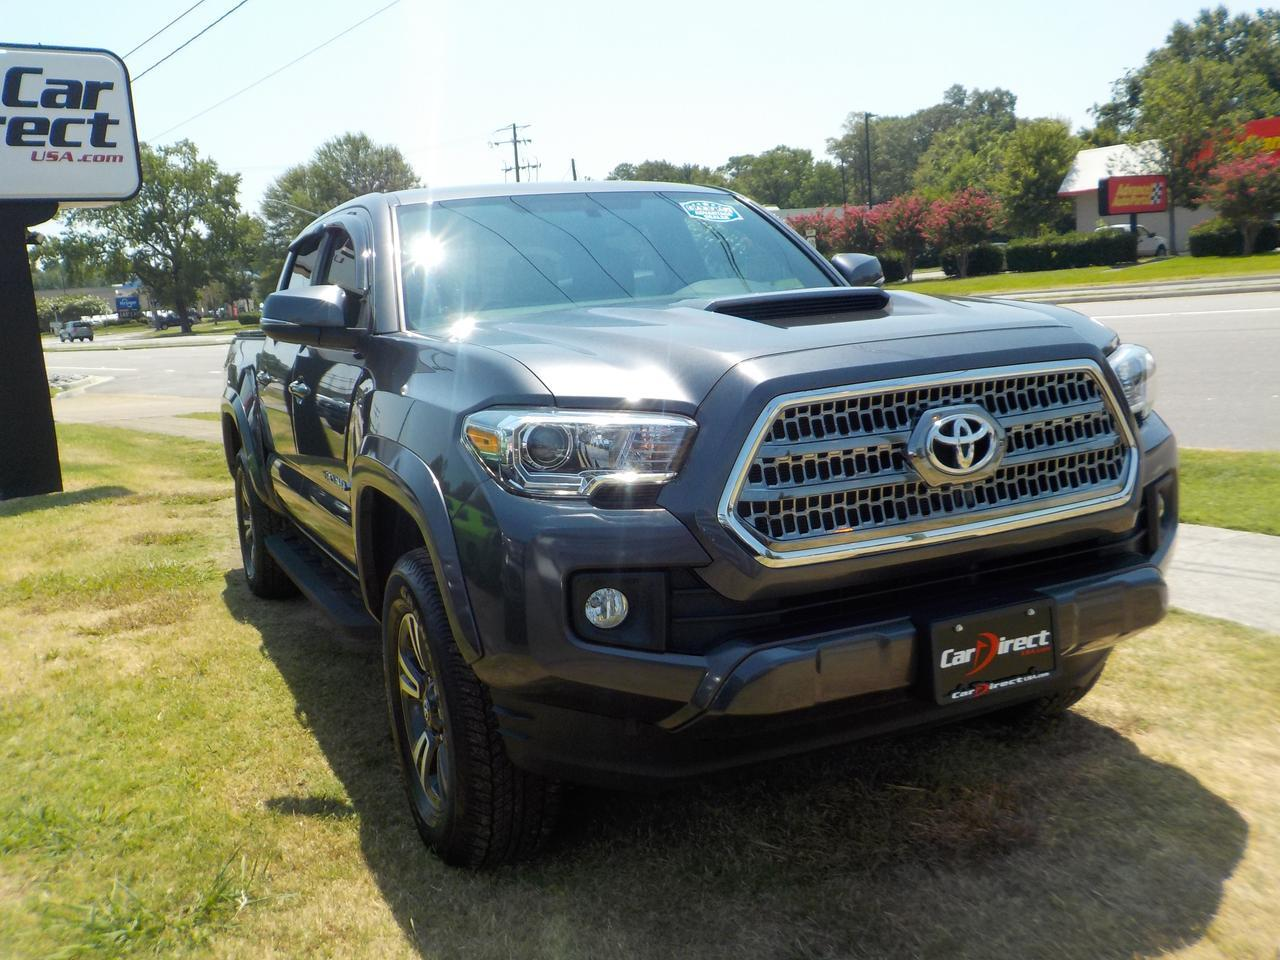 2017 TOYOTA TACOMA DOUBLE CAB TRD SPORT 4X4, ONE OWNER, HEATED SEATS, NAVI, HARD TONNEAU COVER, ONLY 35K MILES! Virginia Beach VA